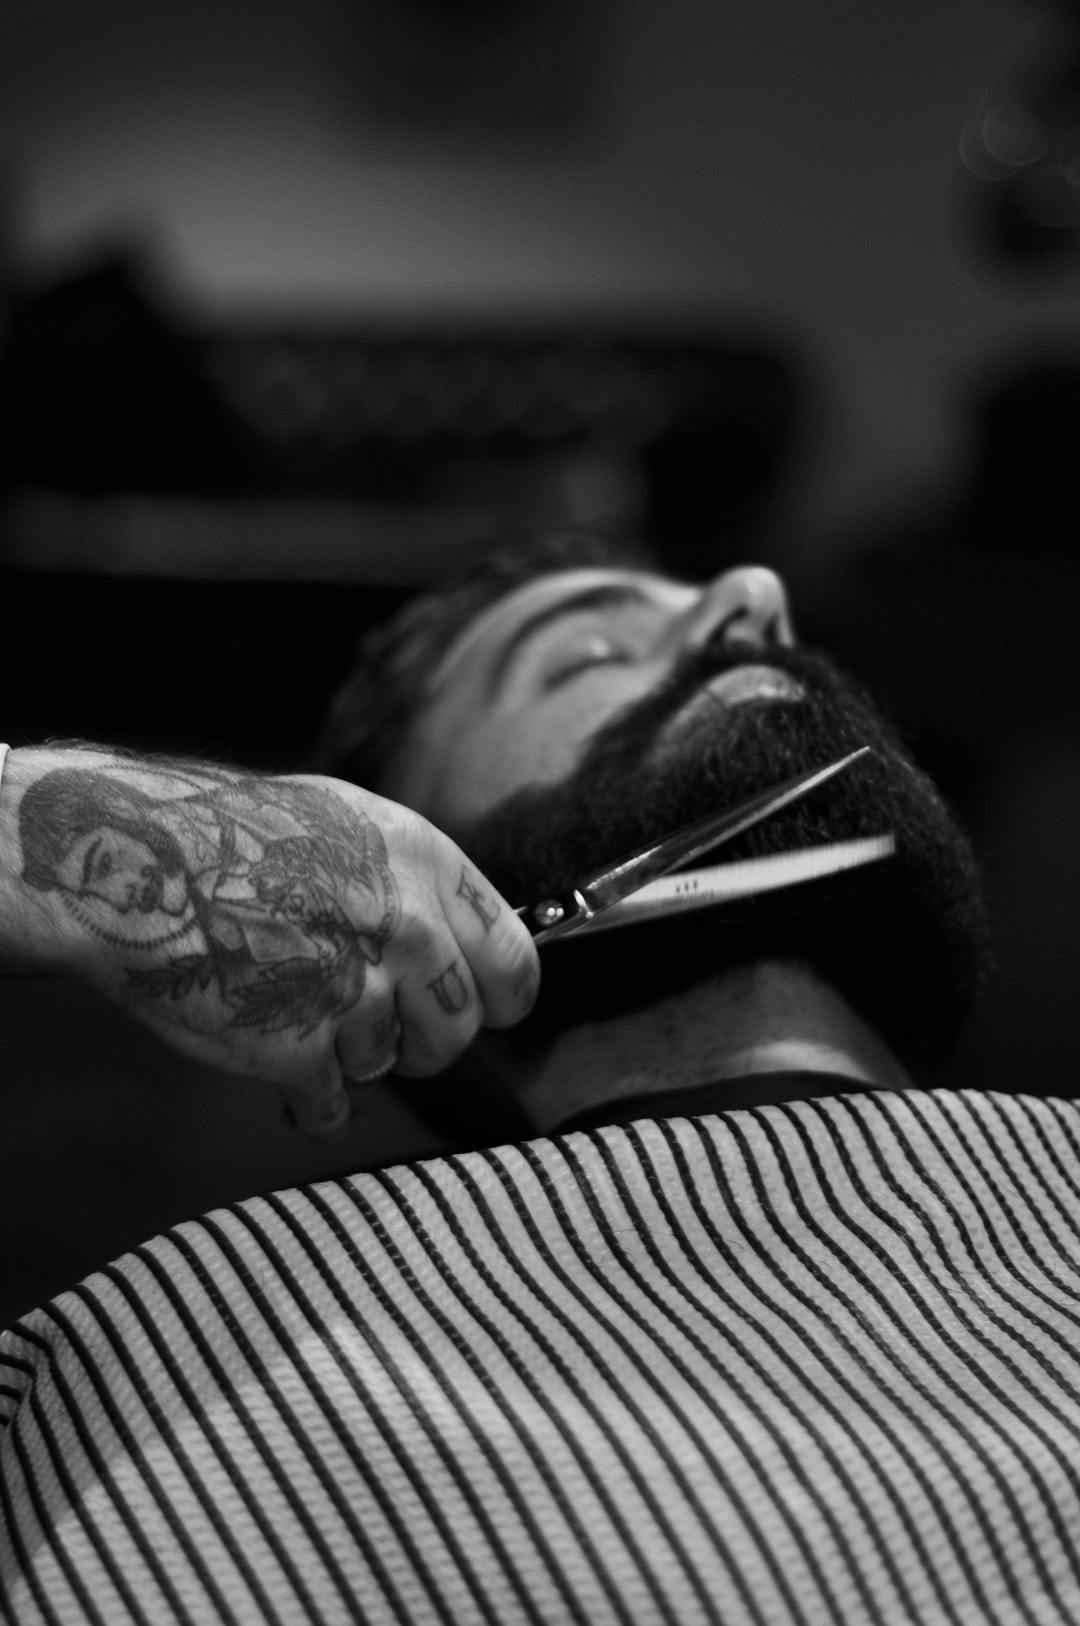 """In Cork, there is a new barber in town specializing in classic cuts. Here we can see """"the man in the chair,"""" relaxing and enjoying some peace and quite, while the barber cleans him up a bit."""